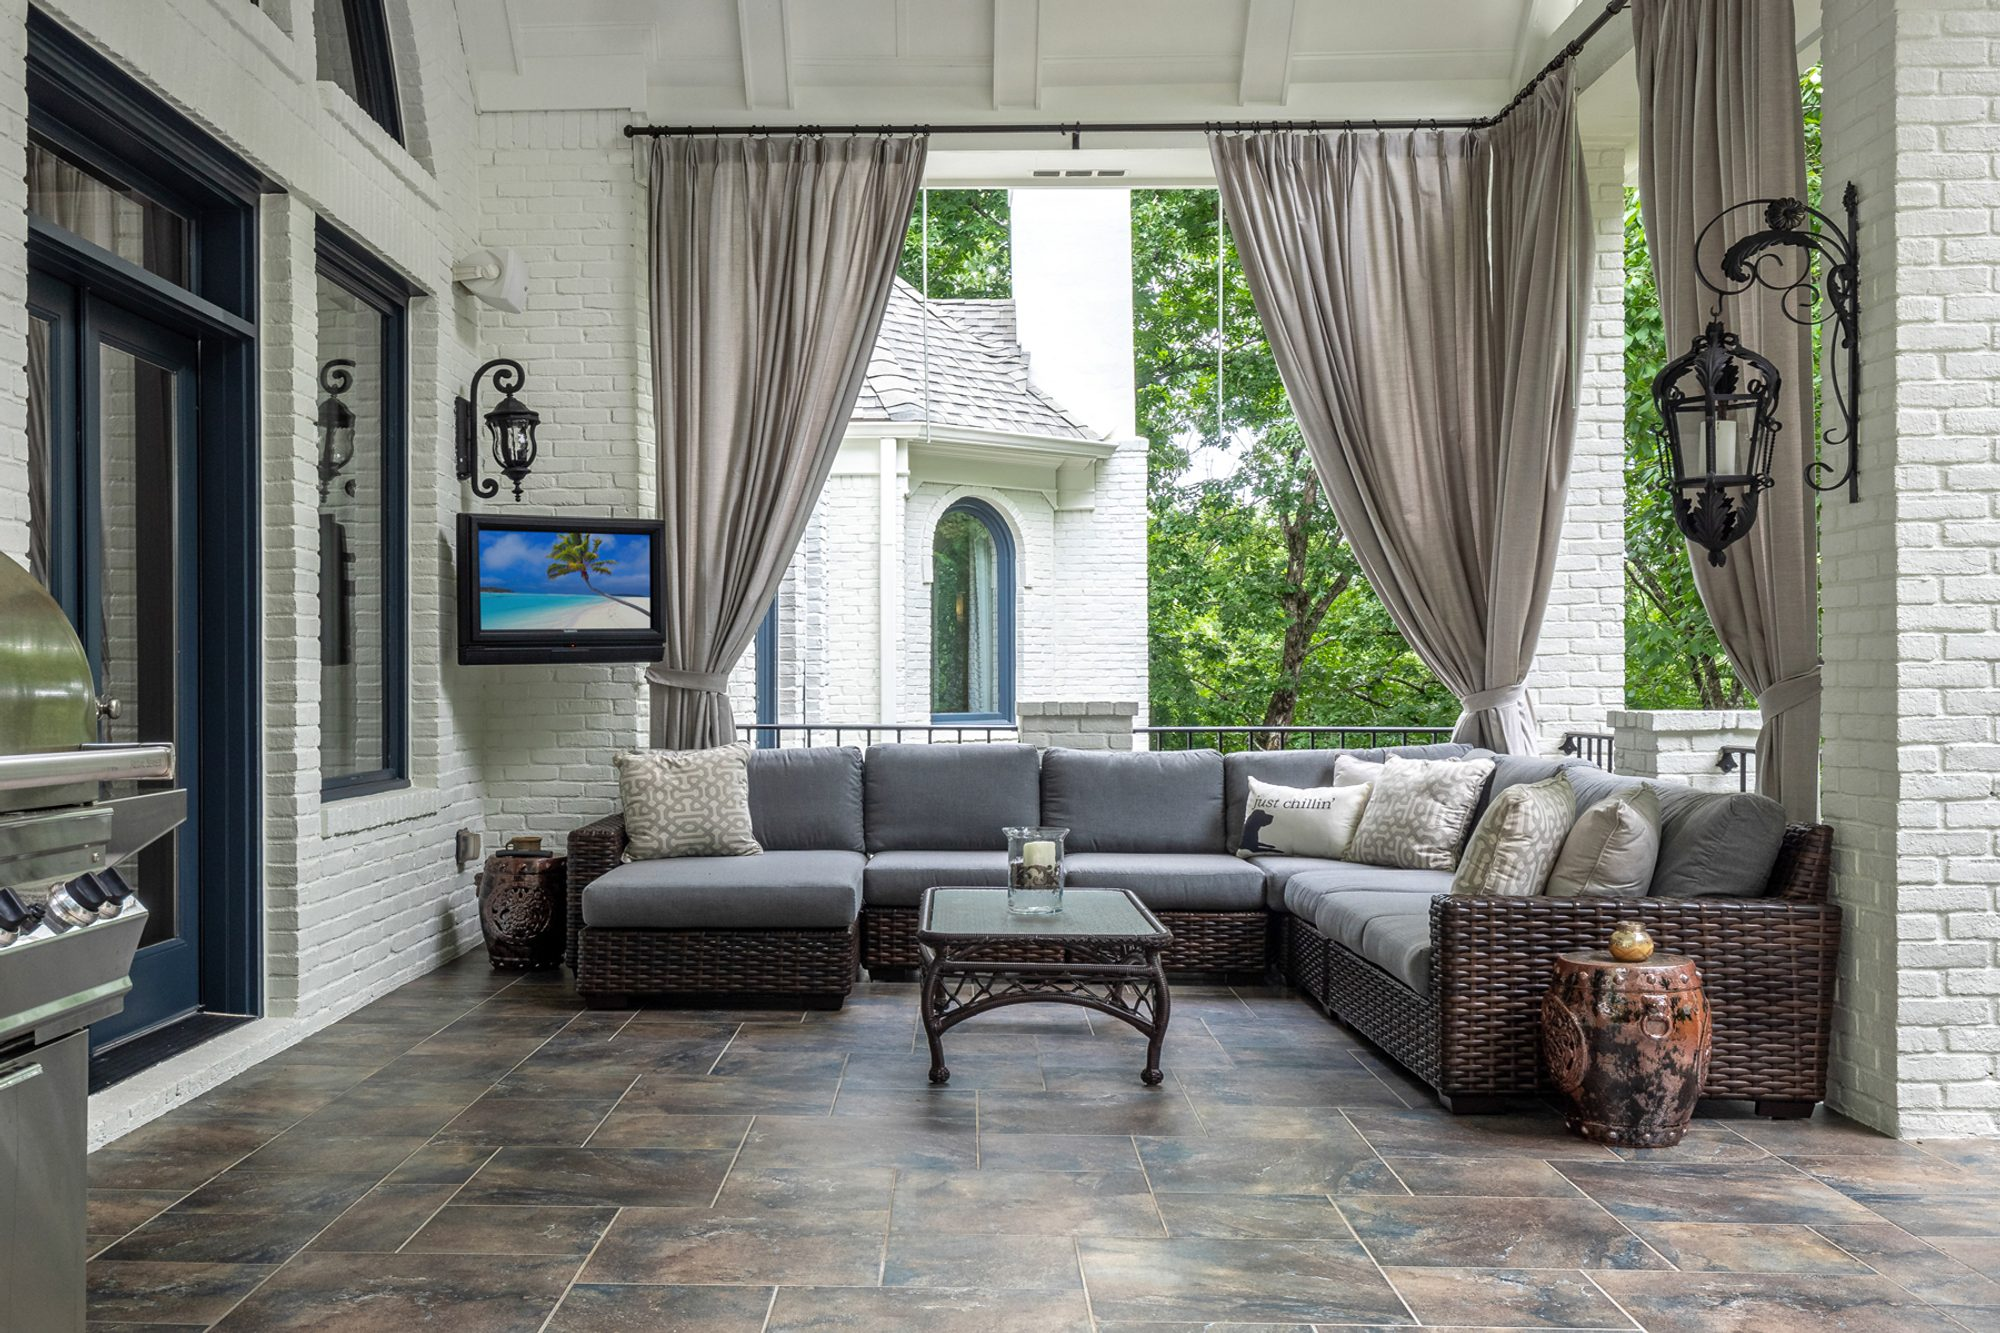 Back covered porch with painted white brick walls and columns.